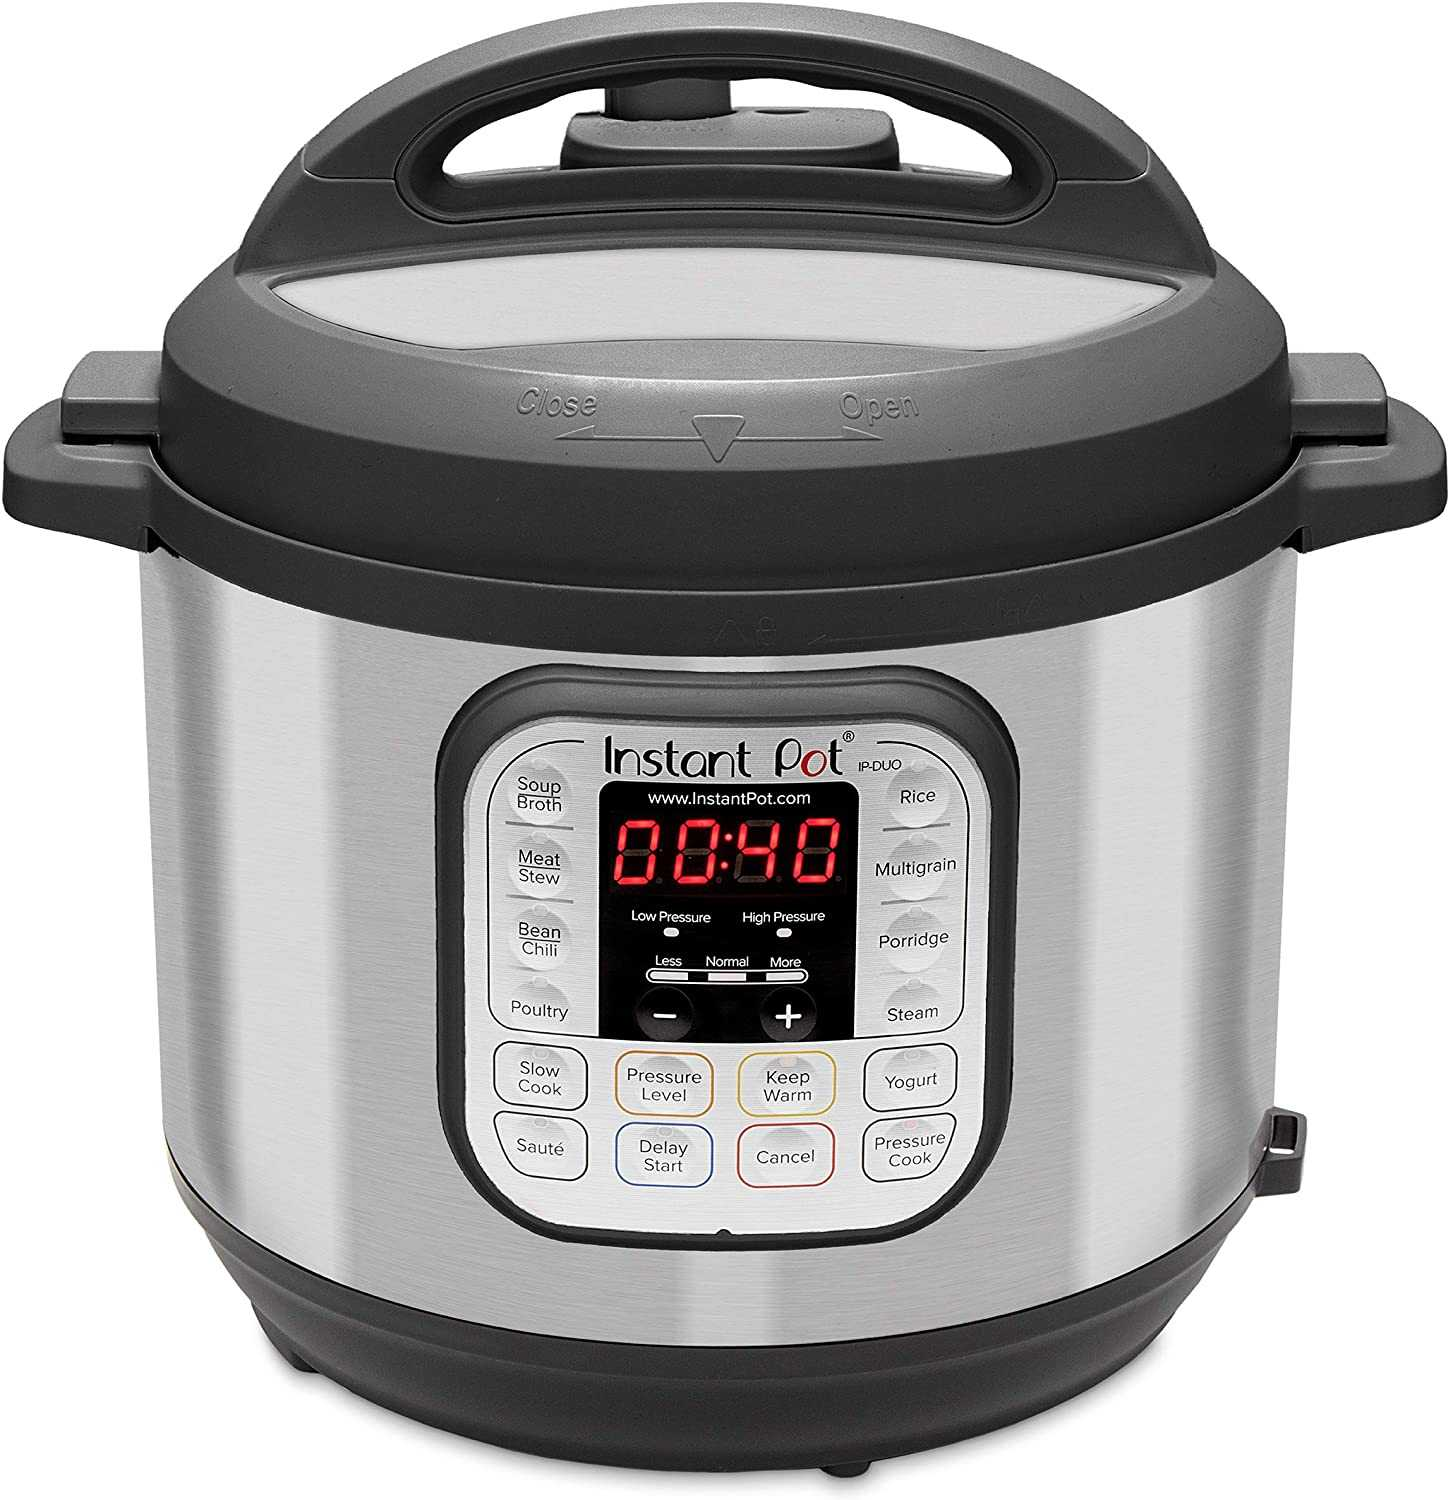 Instant Pot Duo 7 In 1 Electric Pressure Cooker Gotomalls